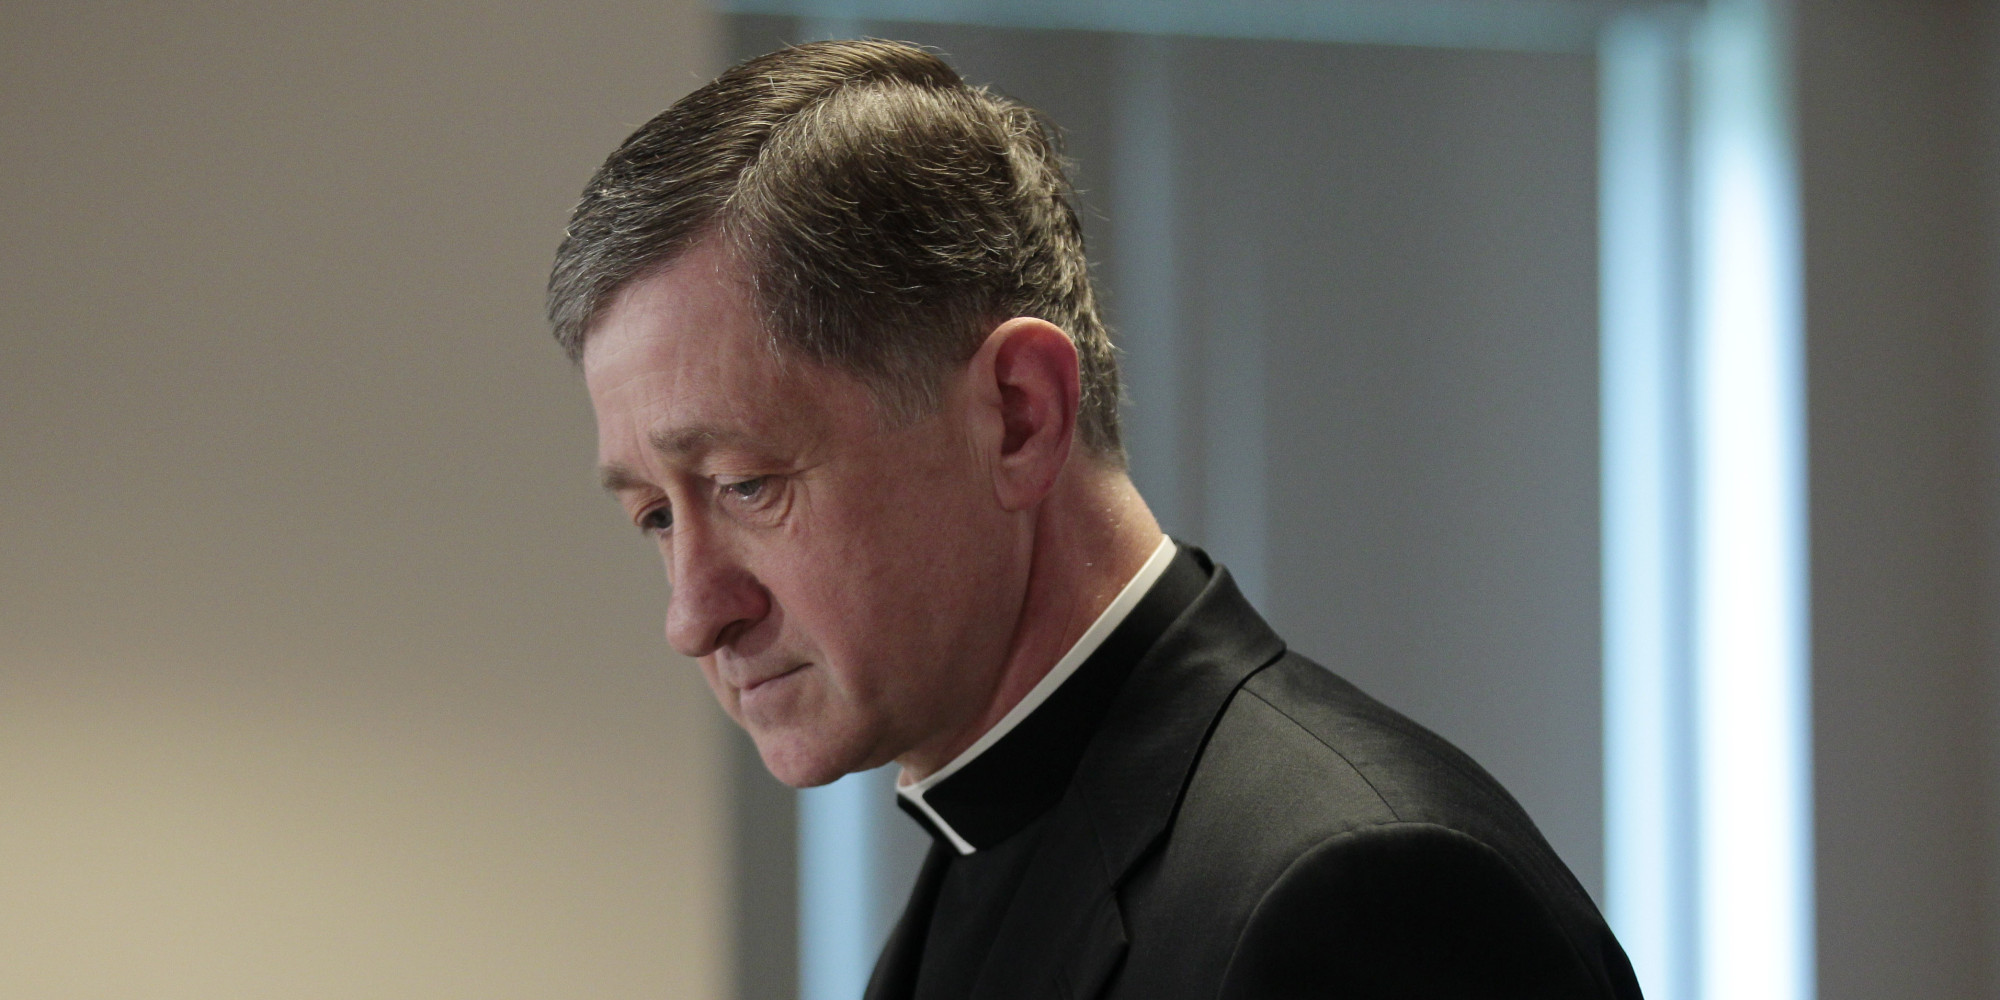 Bishop Blase Cupich of Spokane Wash., walks away from the podium after making a statement at a news conference by the US Conference of Catholic Bishops (USCCB) releasing the findings of a study to analyze the pattern of clergy sex abuse during at USCCB headquarters, Wednesday, May 18, 2011 in Washington. The study, commissioned by the nation's Roman Catholic bishops, from the John Jay College of Criminal Justice in New York, concluded that homosexuality, celibacy and an all-male priesthood did not cause the scandal. (AP Photo/Pablo Martinez Monsivais)